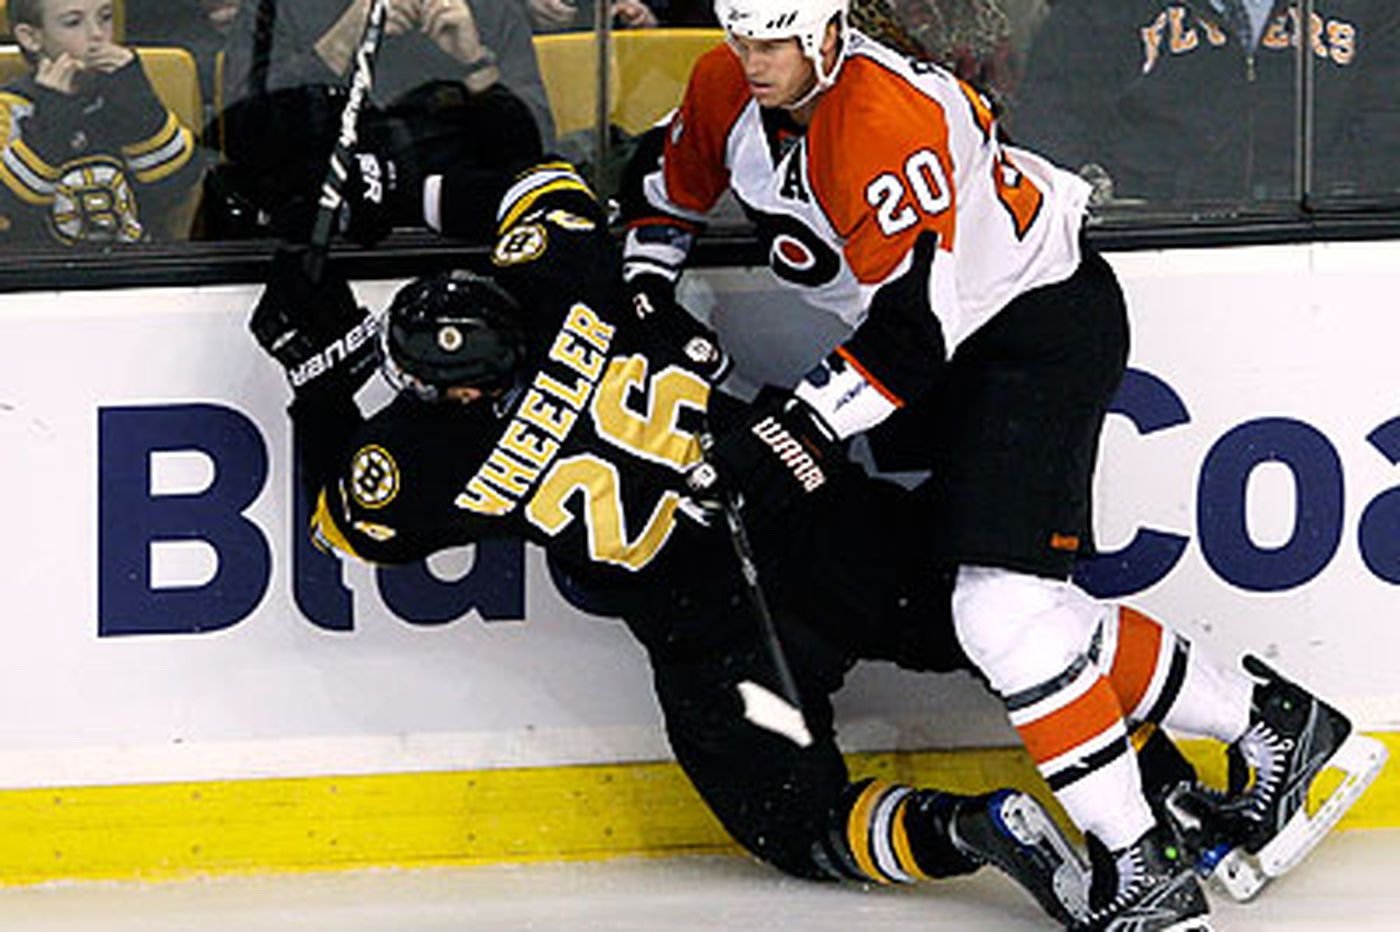 Timonen leads Flyers past Bruins